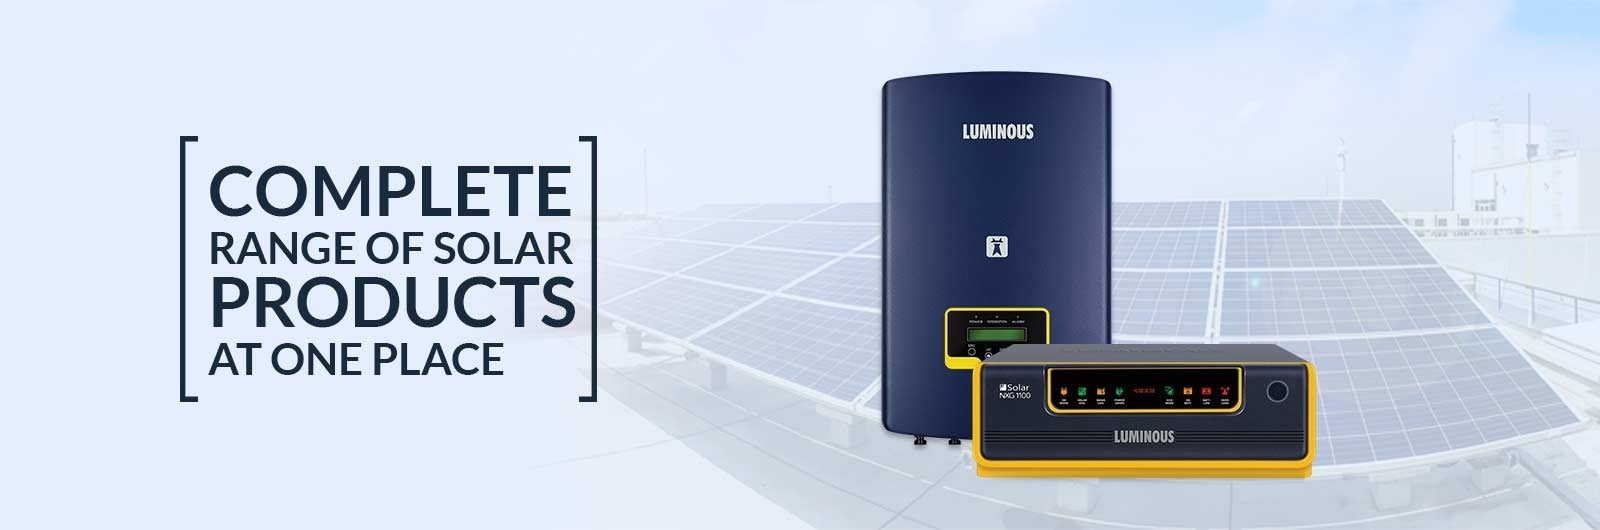 Complete range of solar products at one place